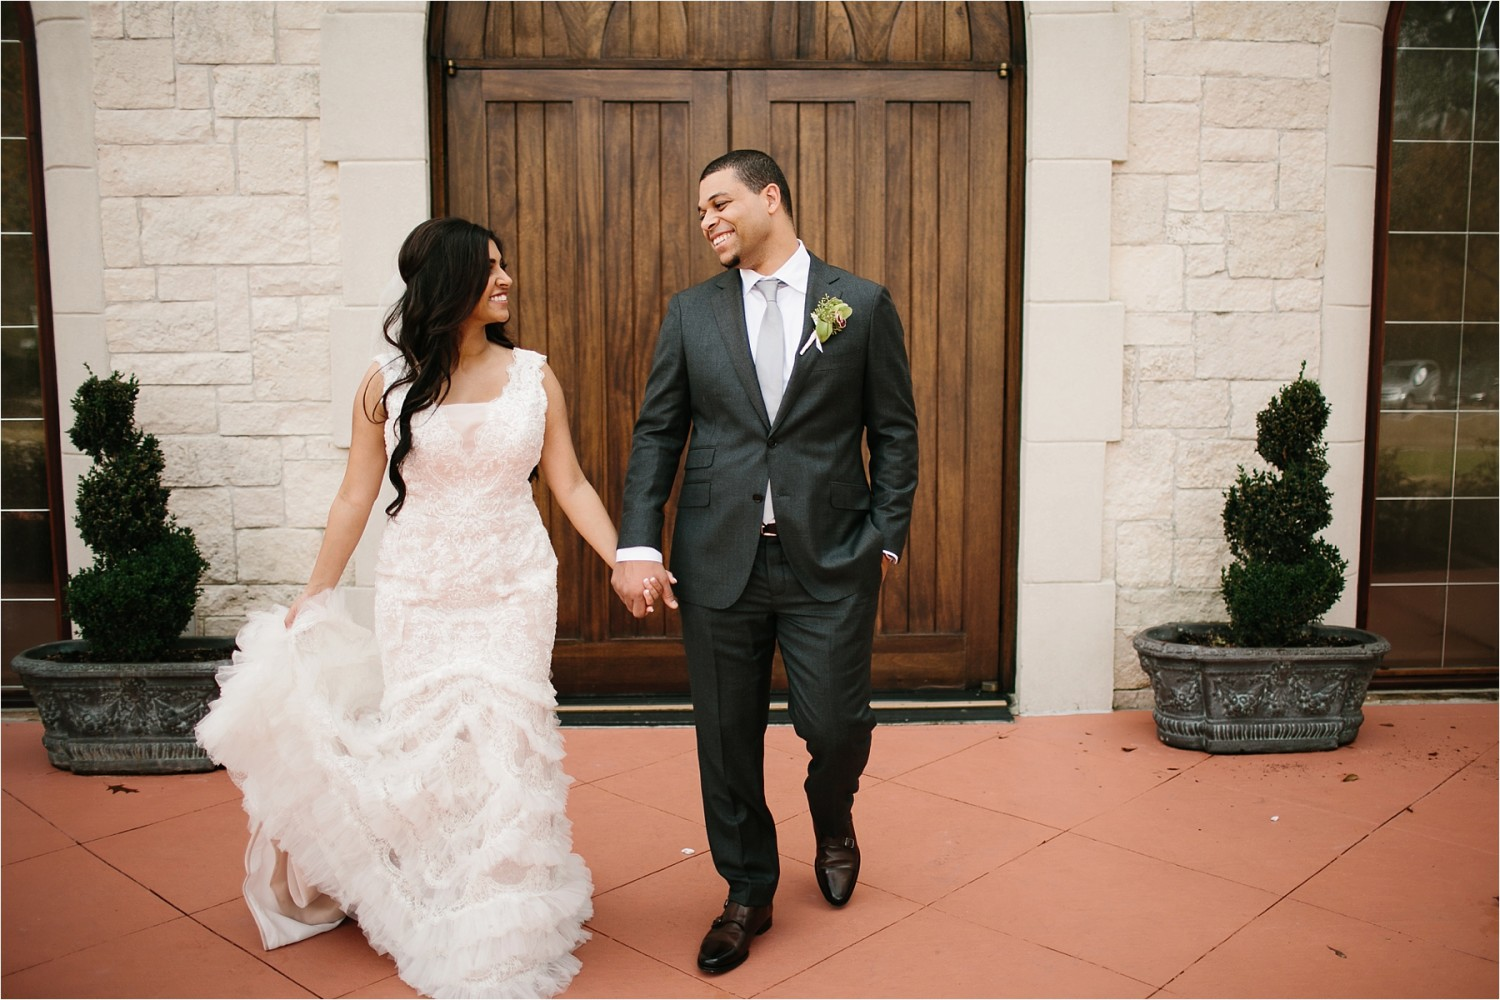 Jeanpaul + Ann __ a colorful wedding at Ashton Gardens in Houston TX by North Texas Wedding Photographer Rachel Meagan Photography _ 37